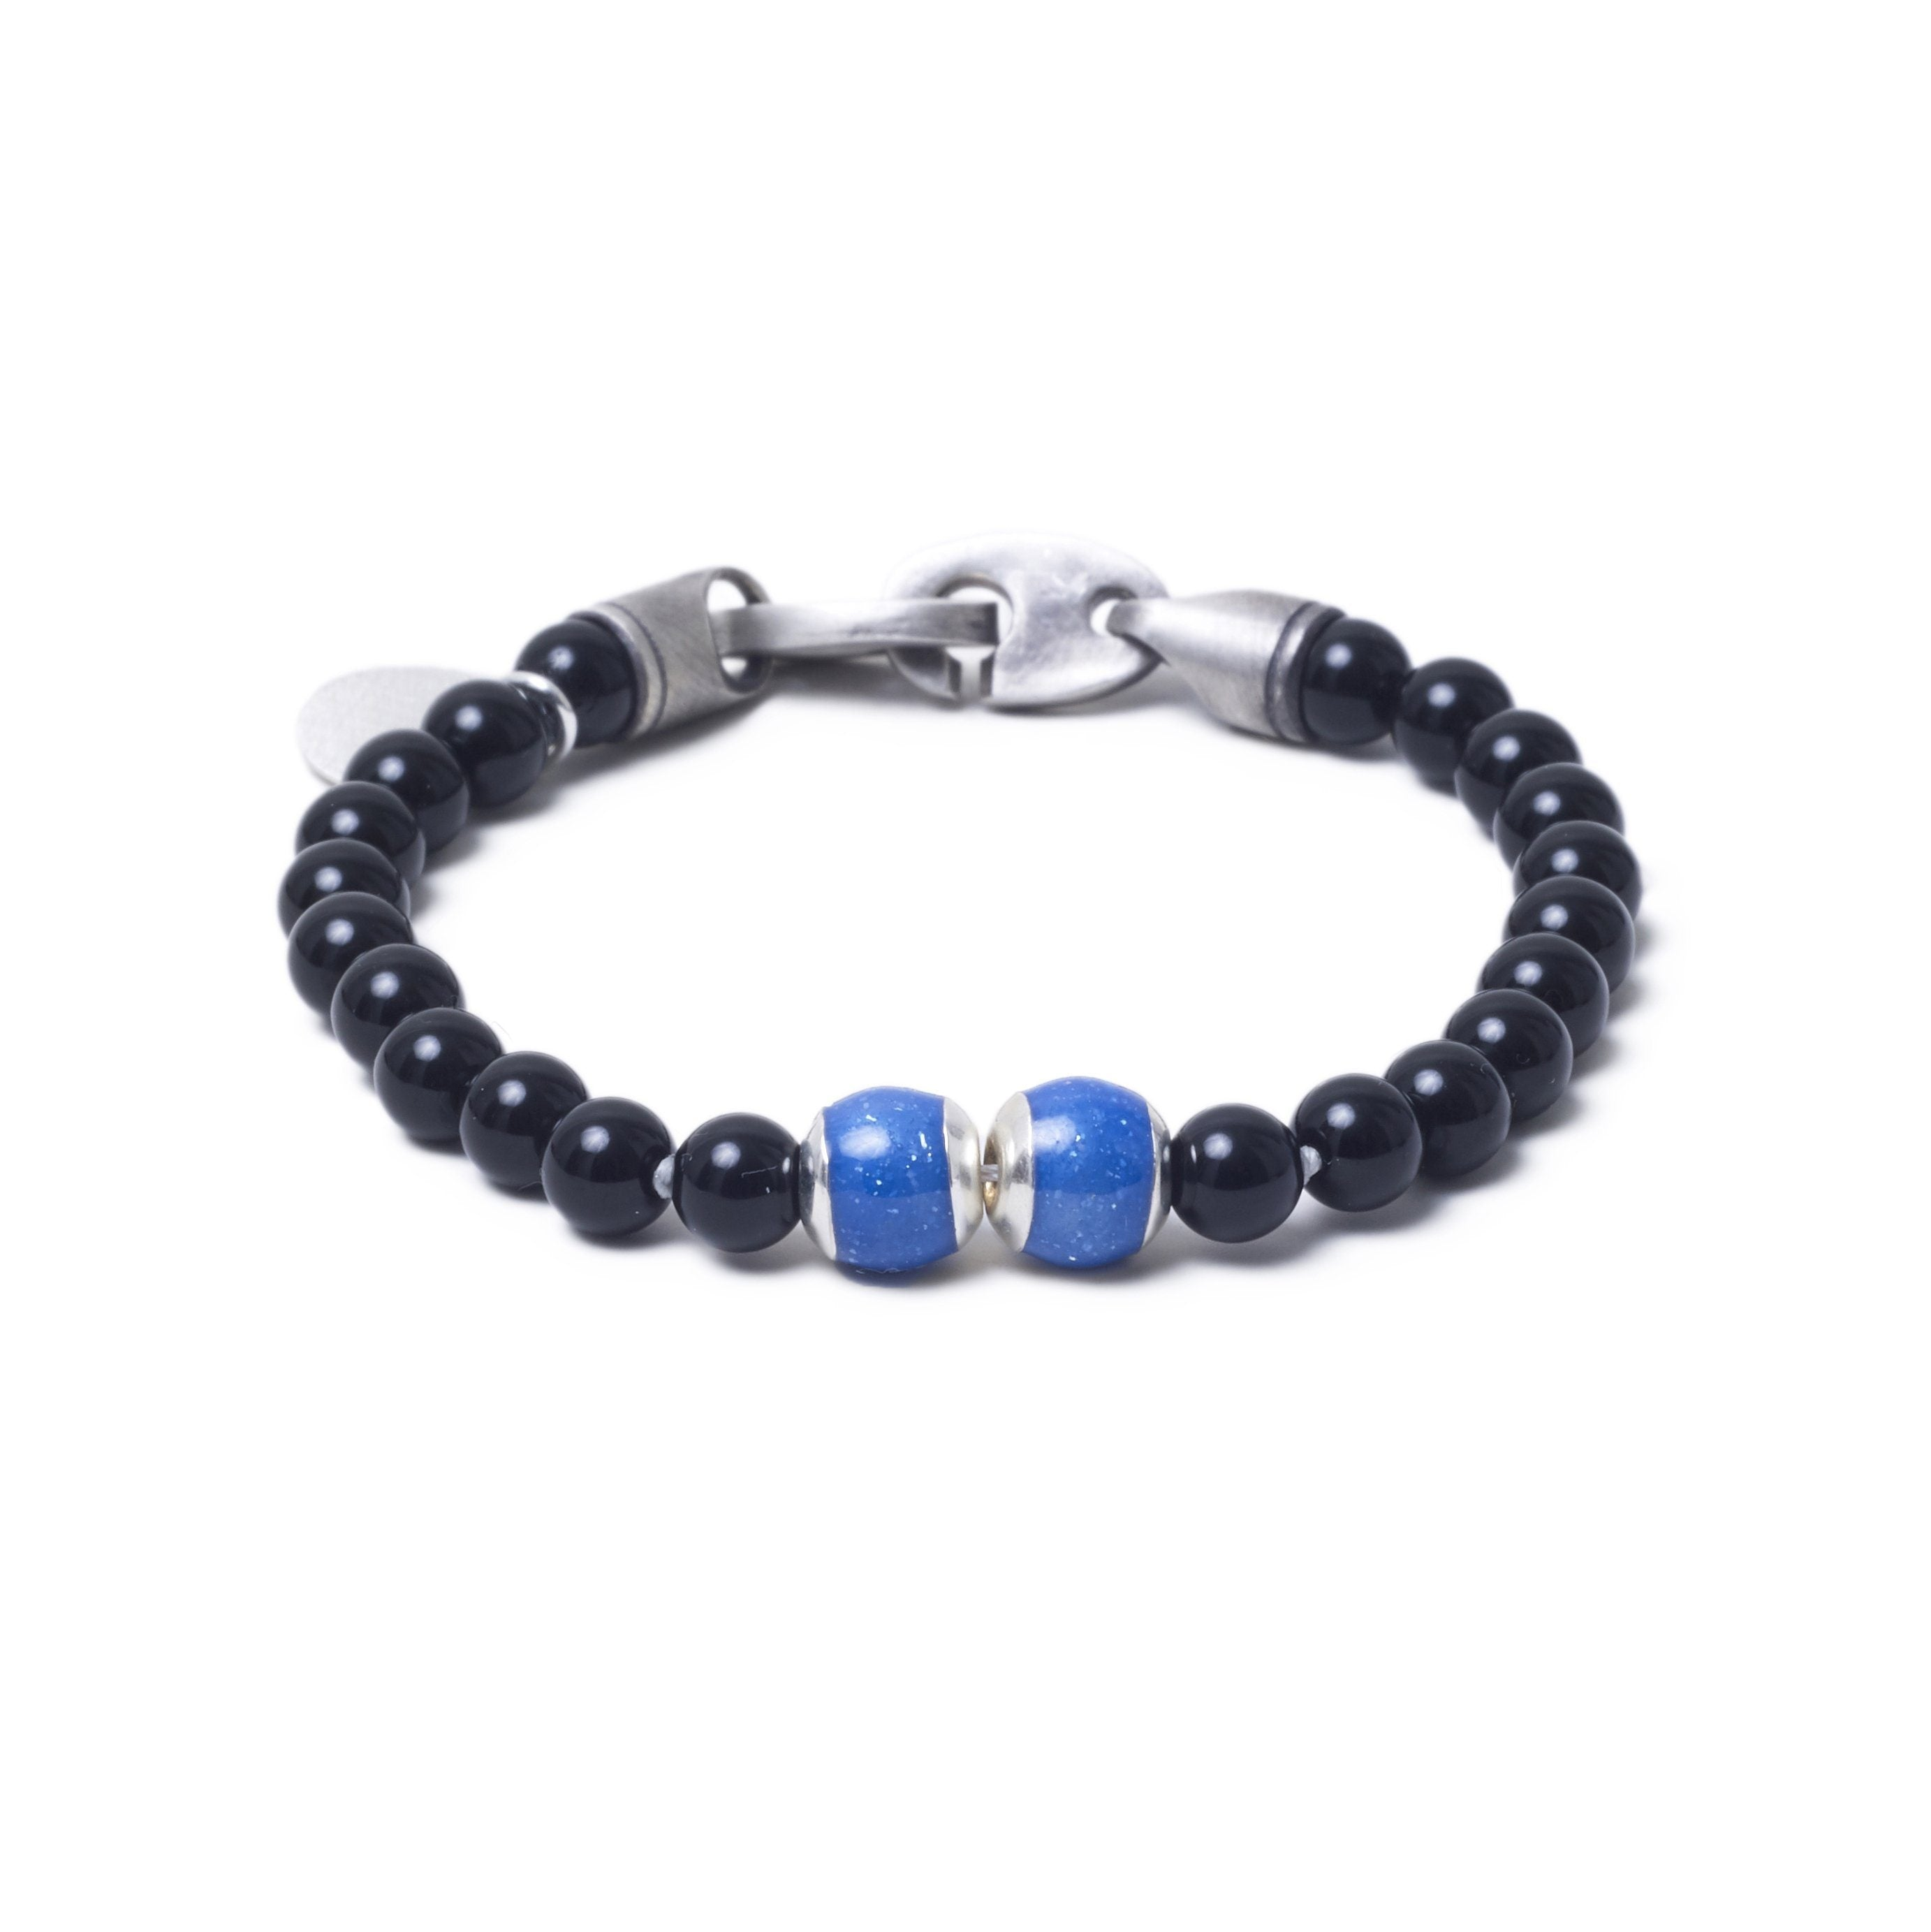 Onyx, Two Everence Beads